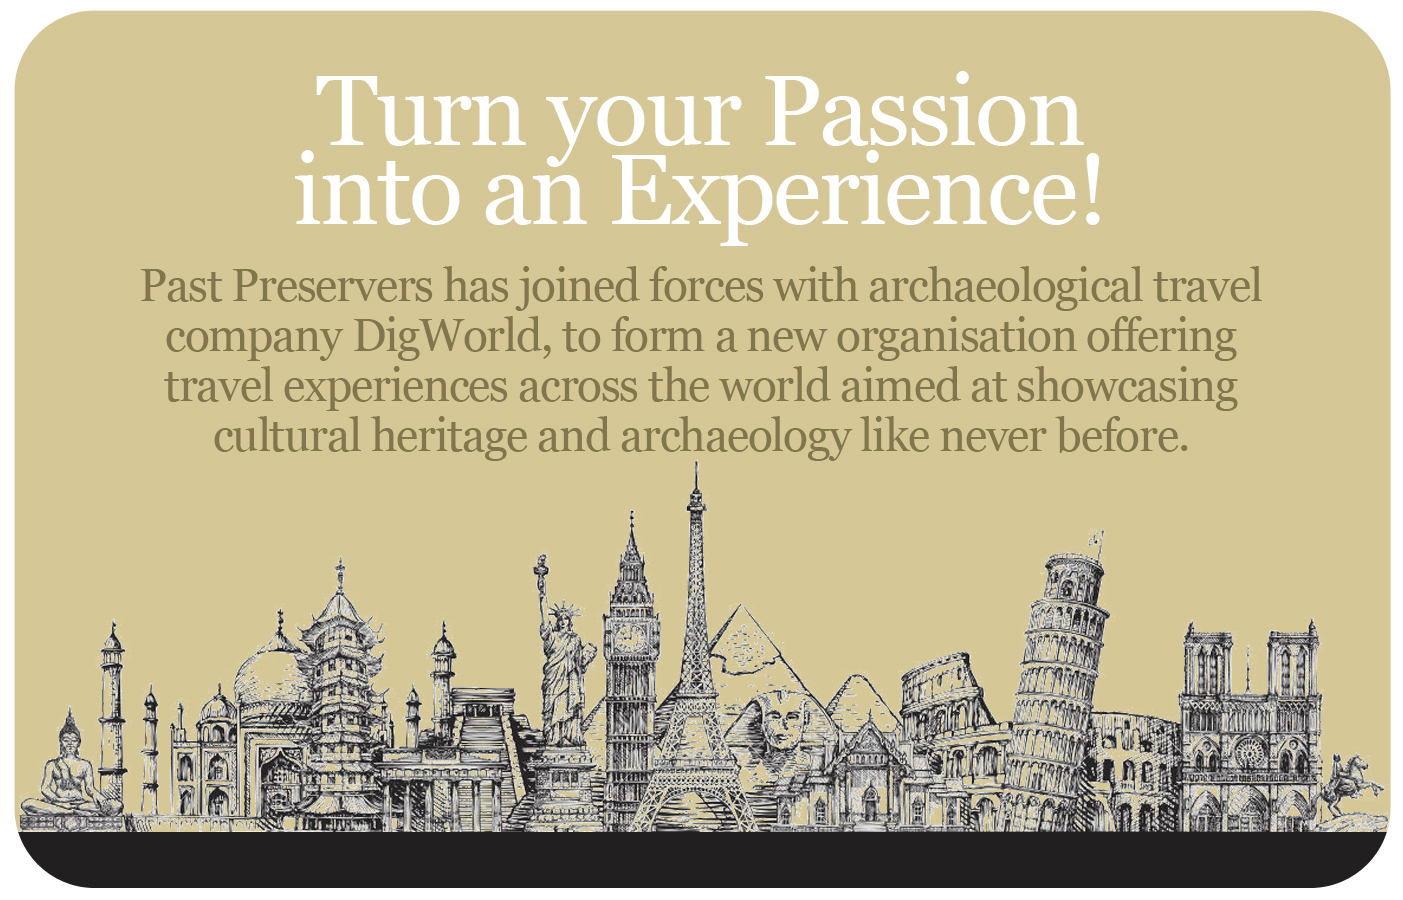 Can you create Travel Experiences for Past Preservers?